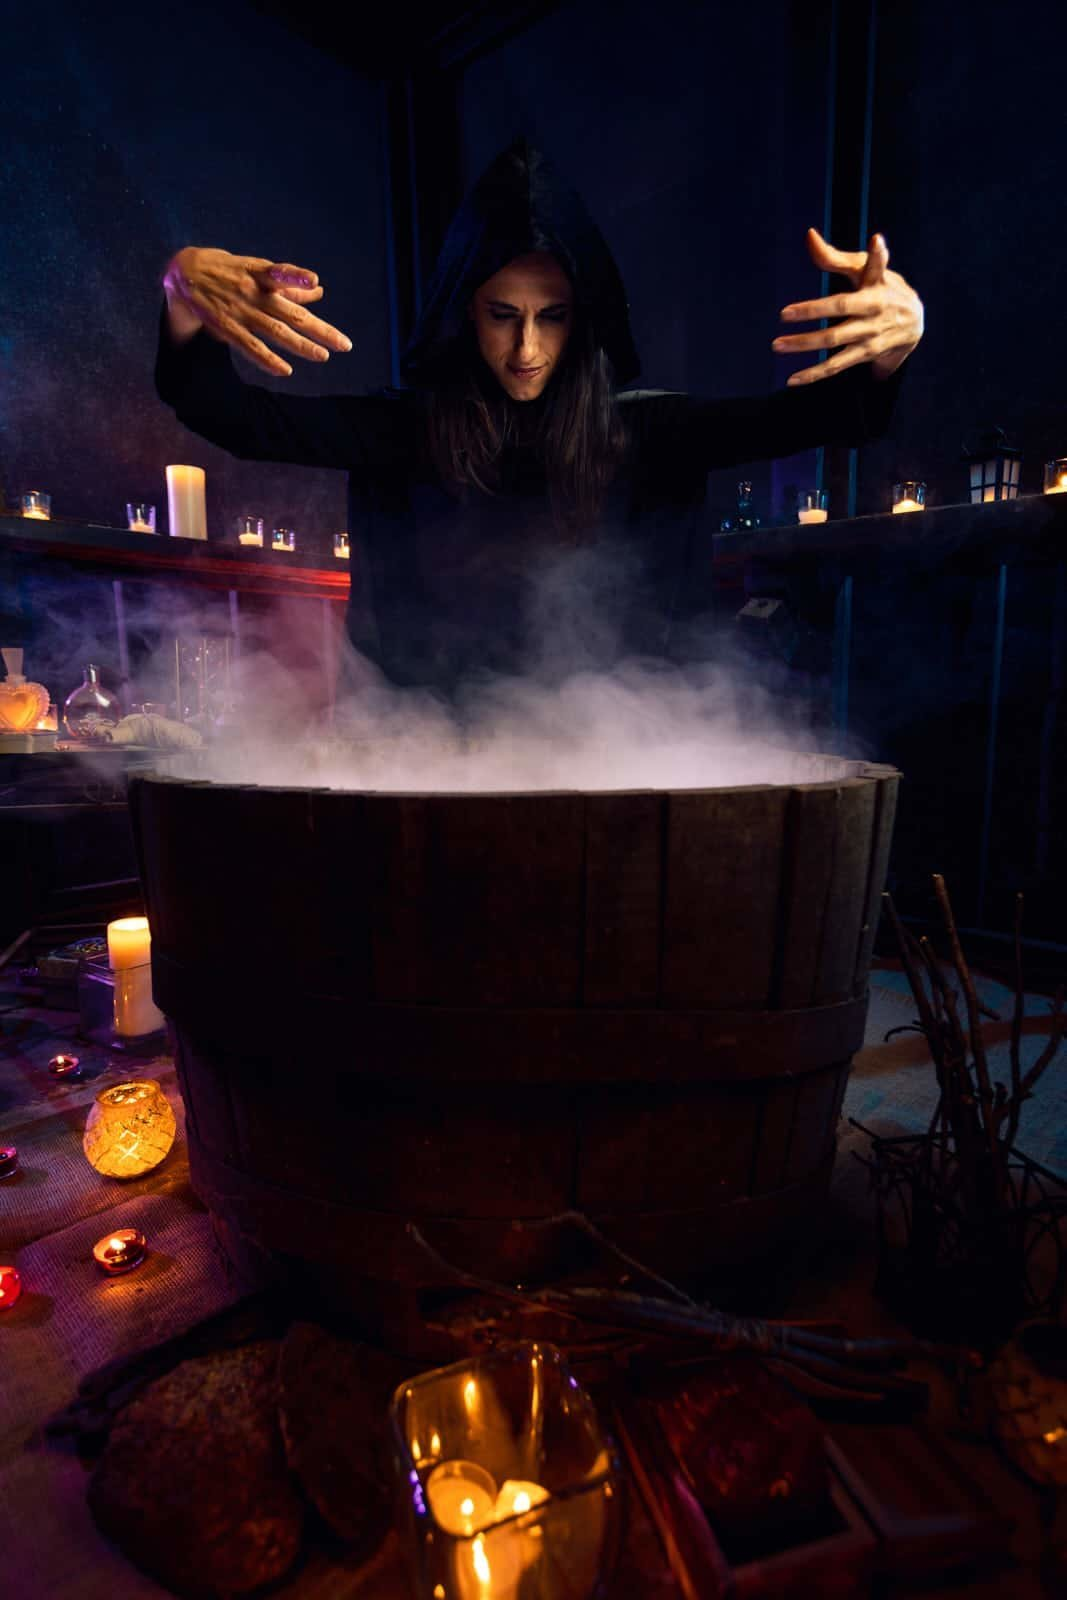 atlanta witch brewing potion over cauldron